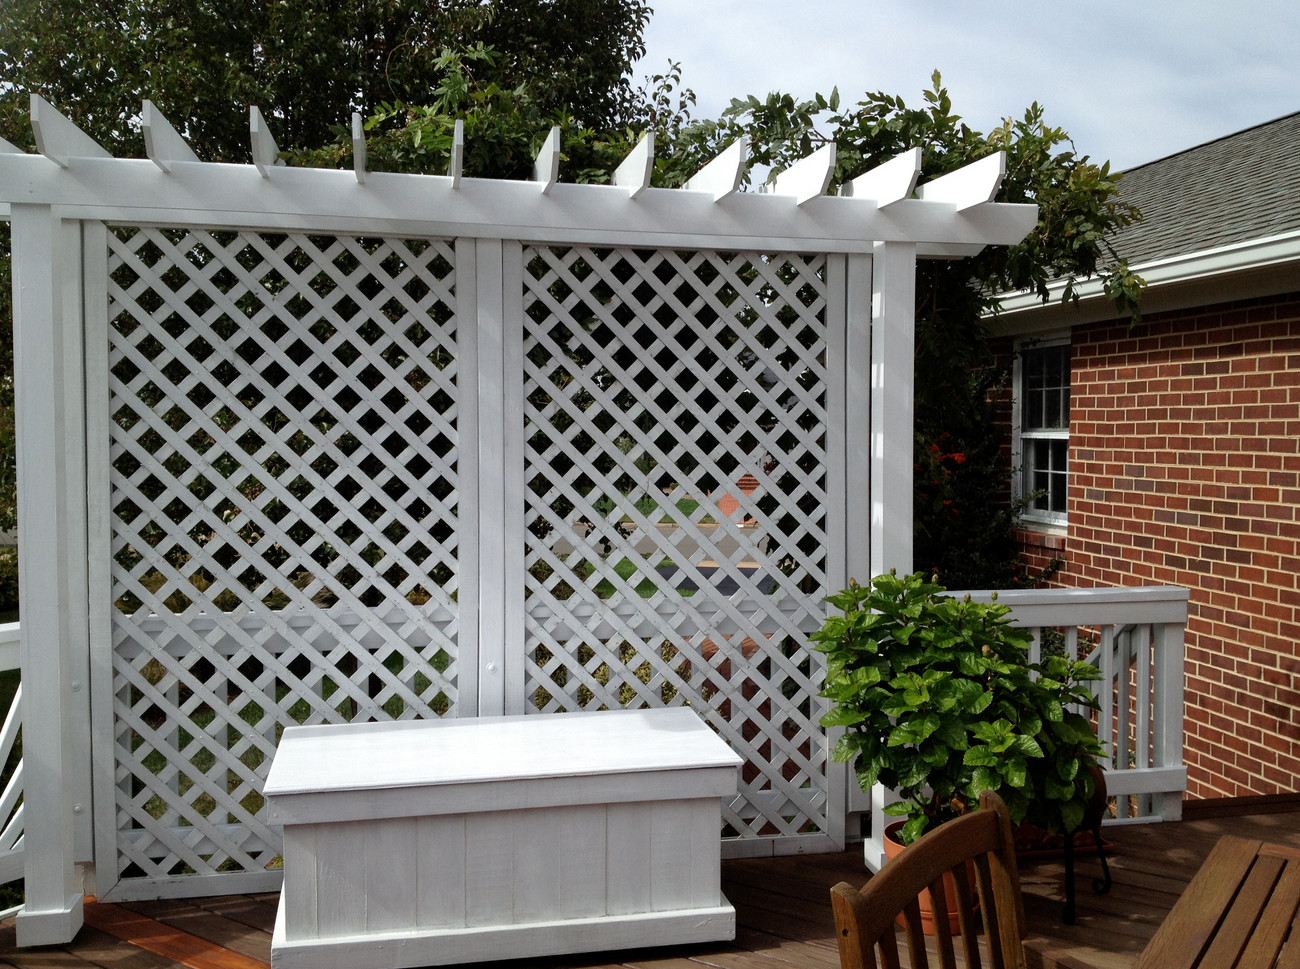 Lattice privacy screen for deck interesting ideas for home for Deck privacy screen panels